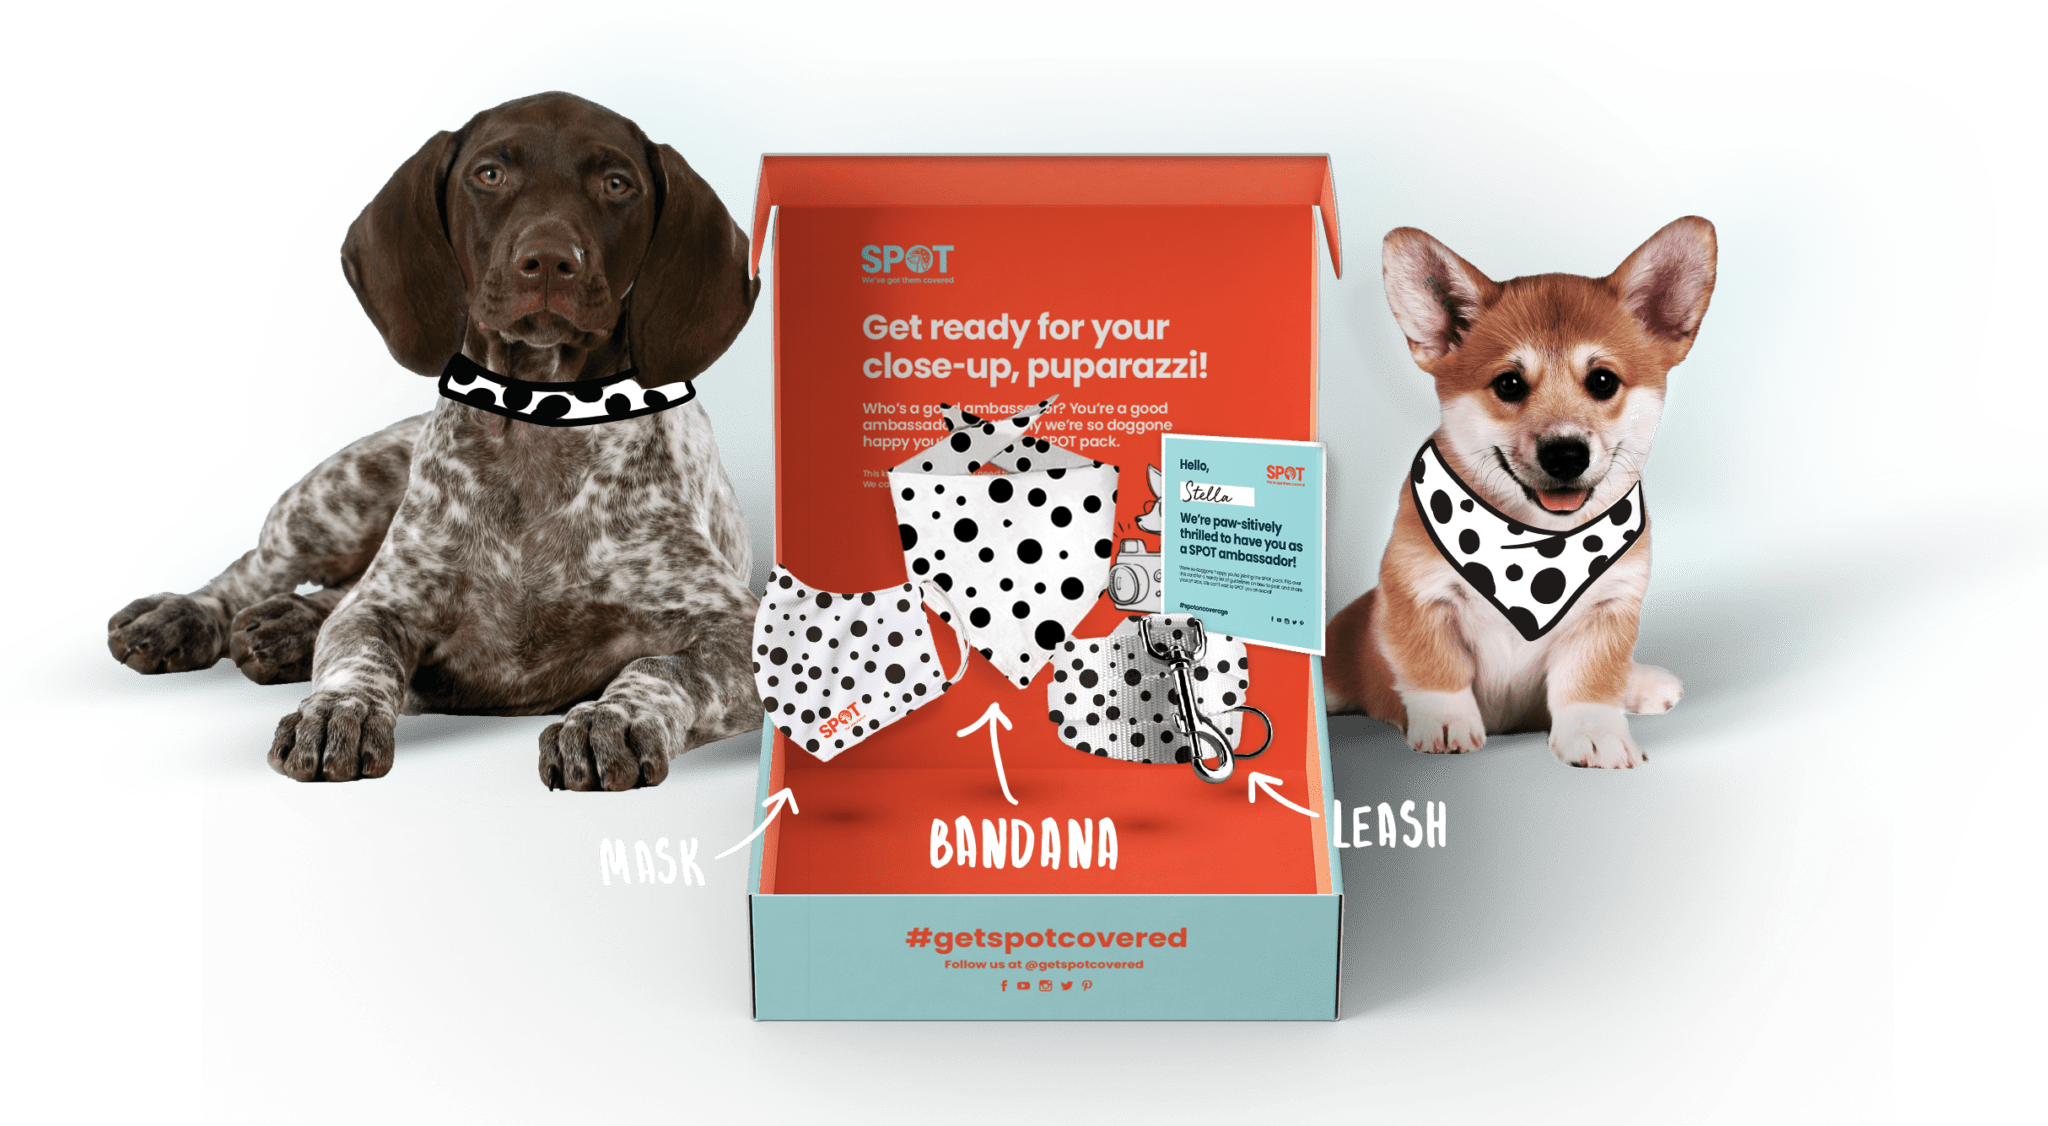 SPOT GIveaway Box with Dogs